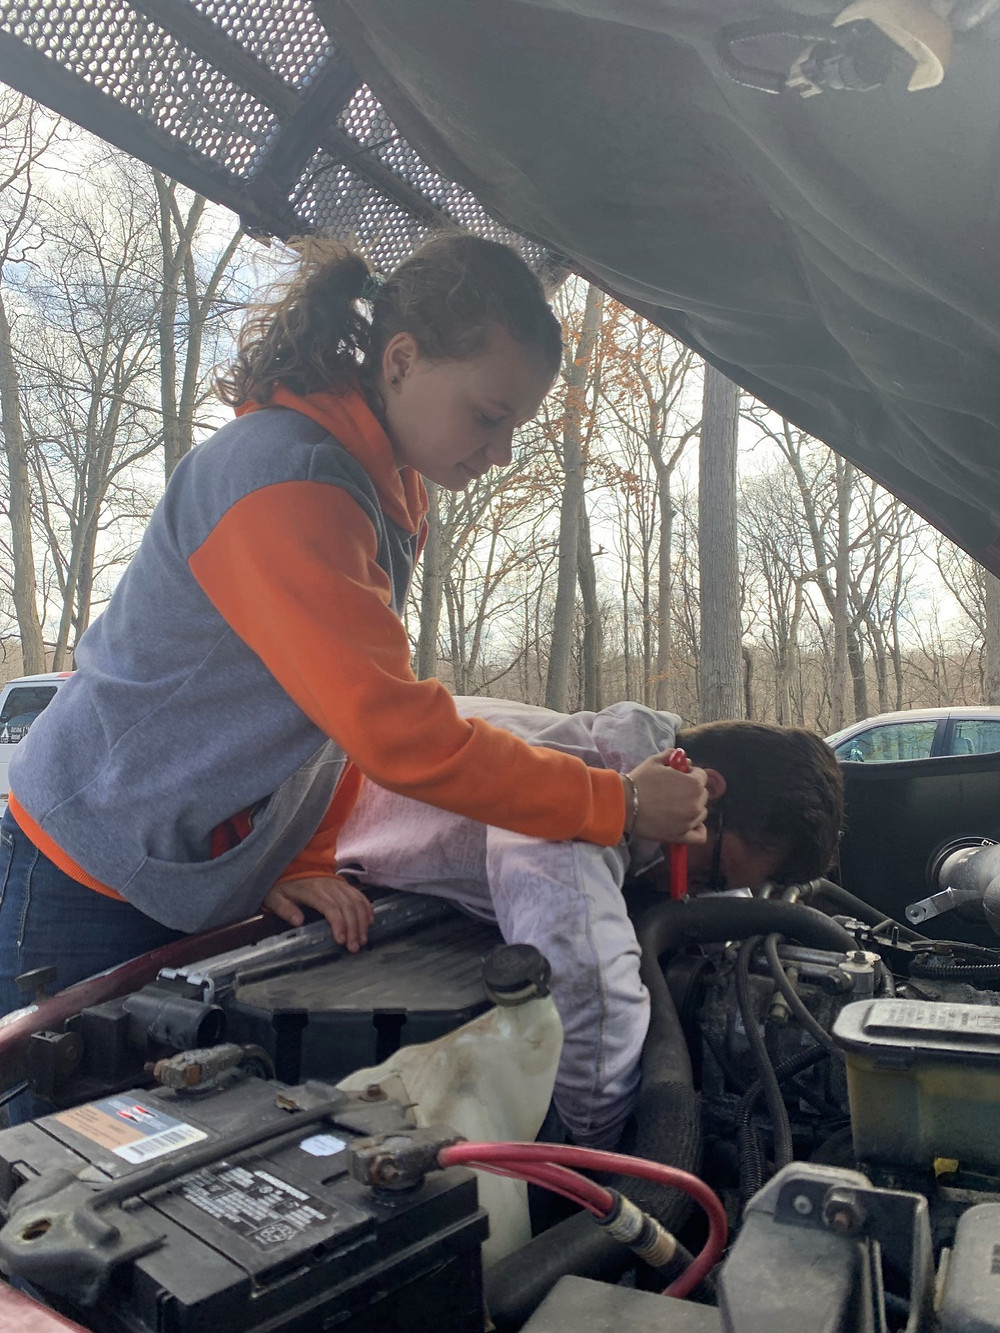 teens should know how to change a tire, change their oil, and jumpstart their cars